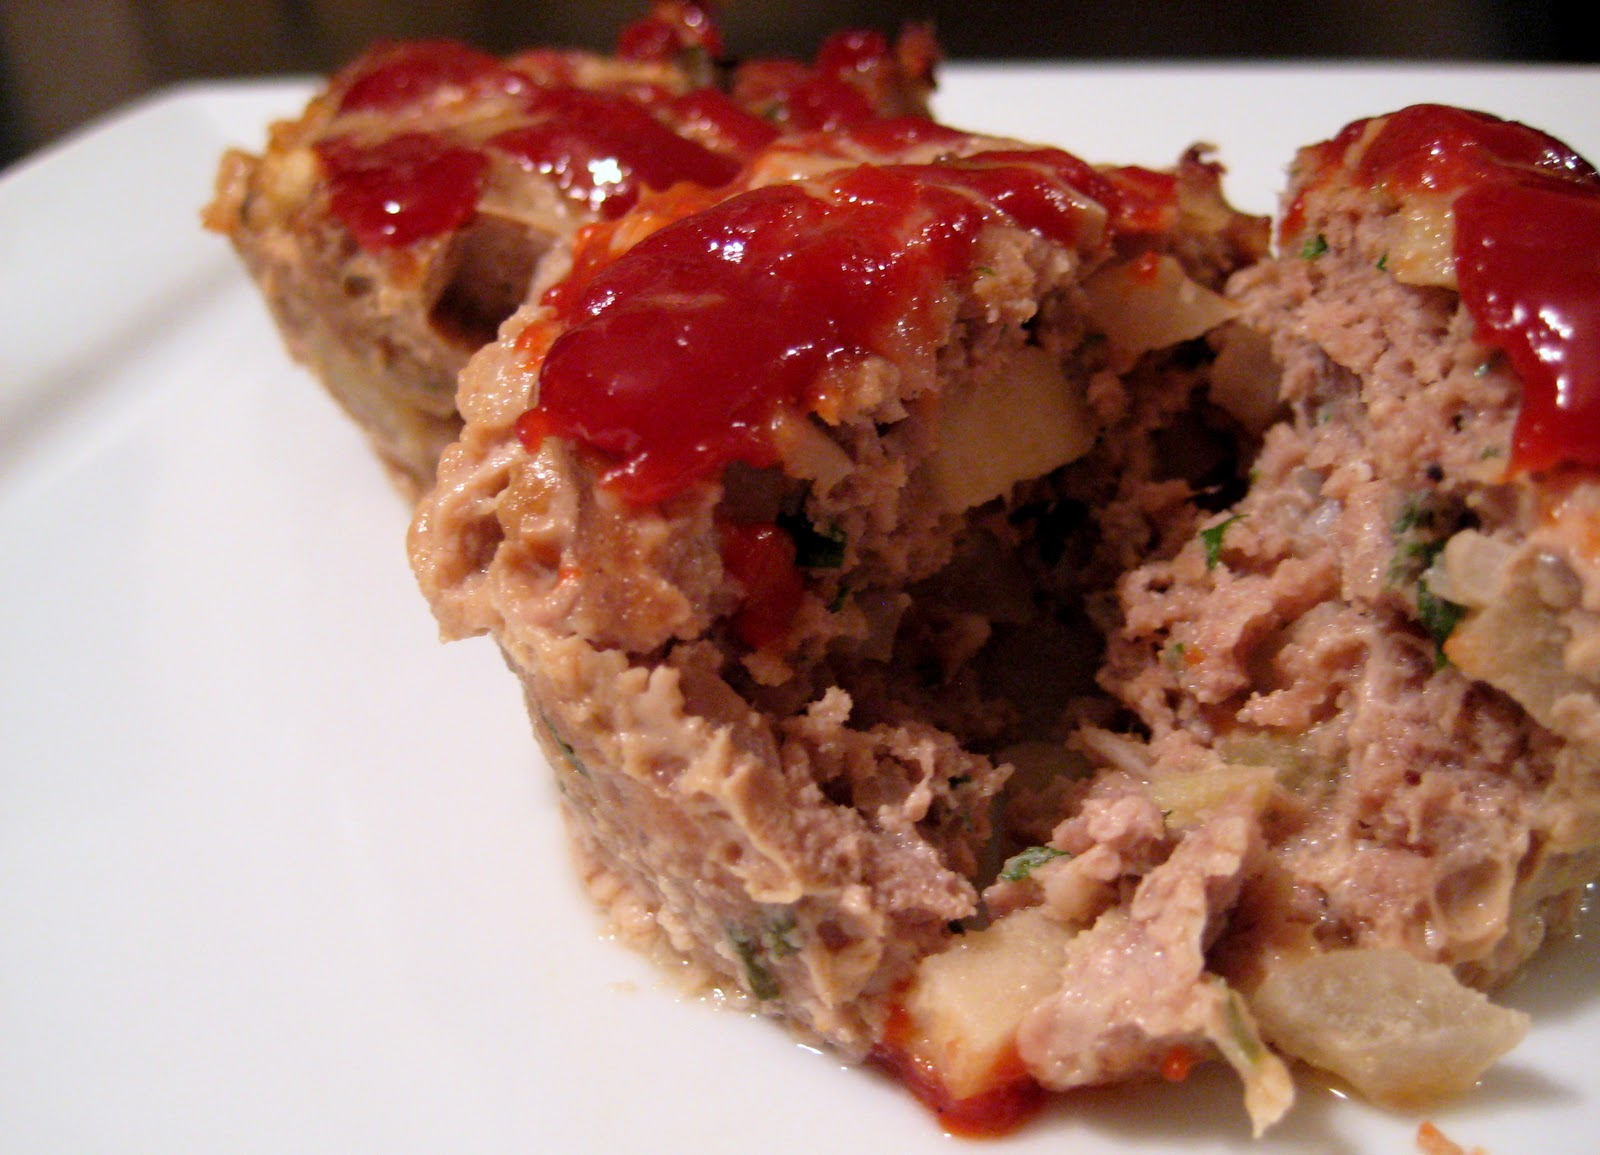 Turkey Pesto Meatloaf With Tomato Sauce Recipes — Dishmaps